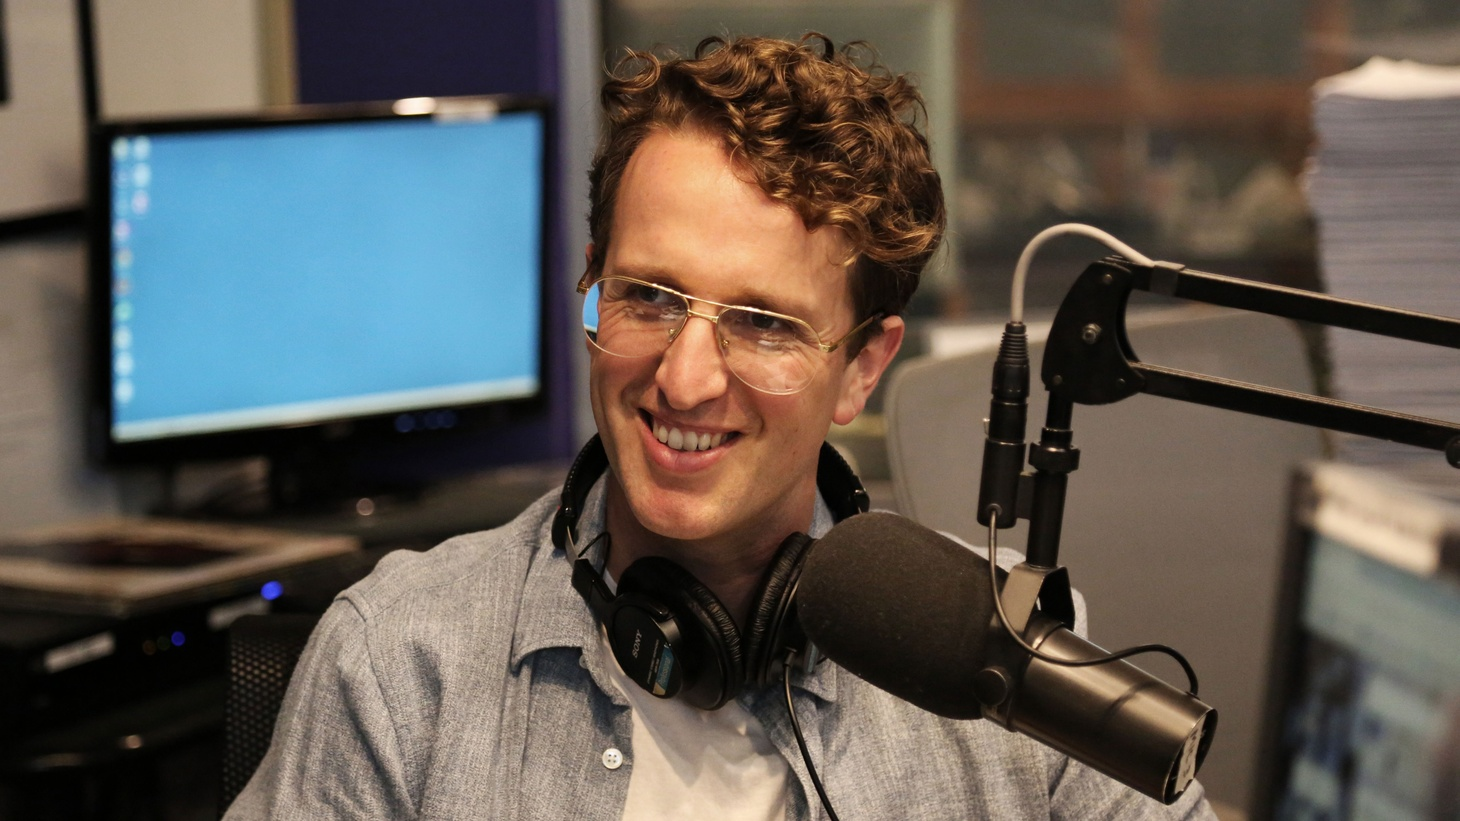 FYF Fest founder Sean Carlson joins us for a Guest DJ set at 10am.